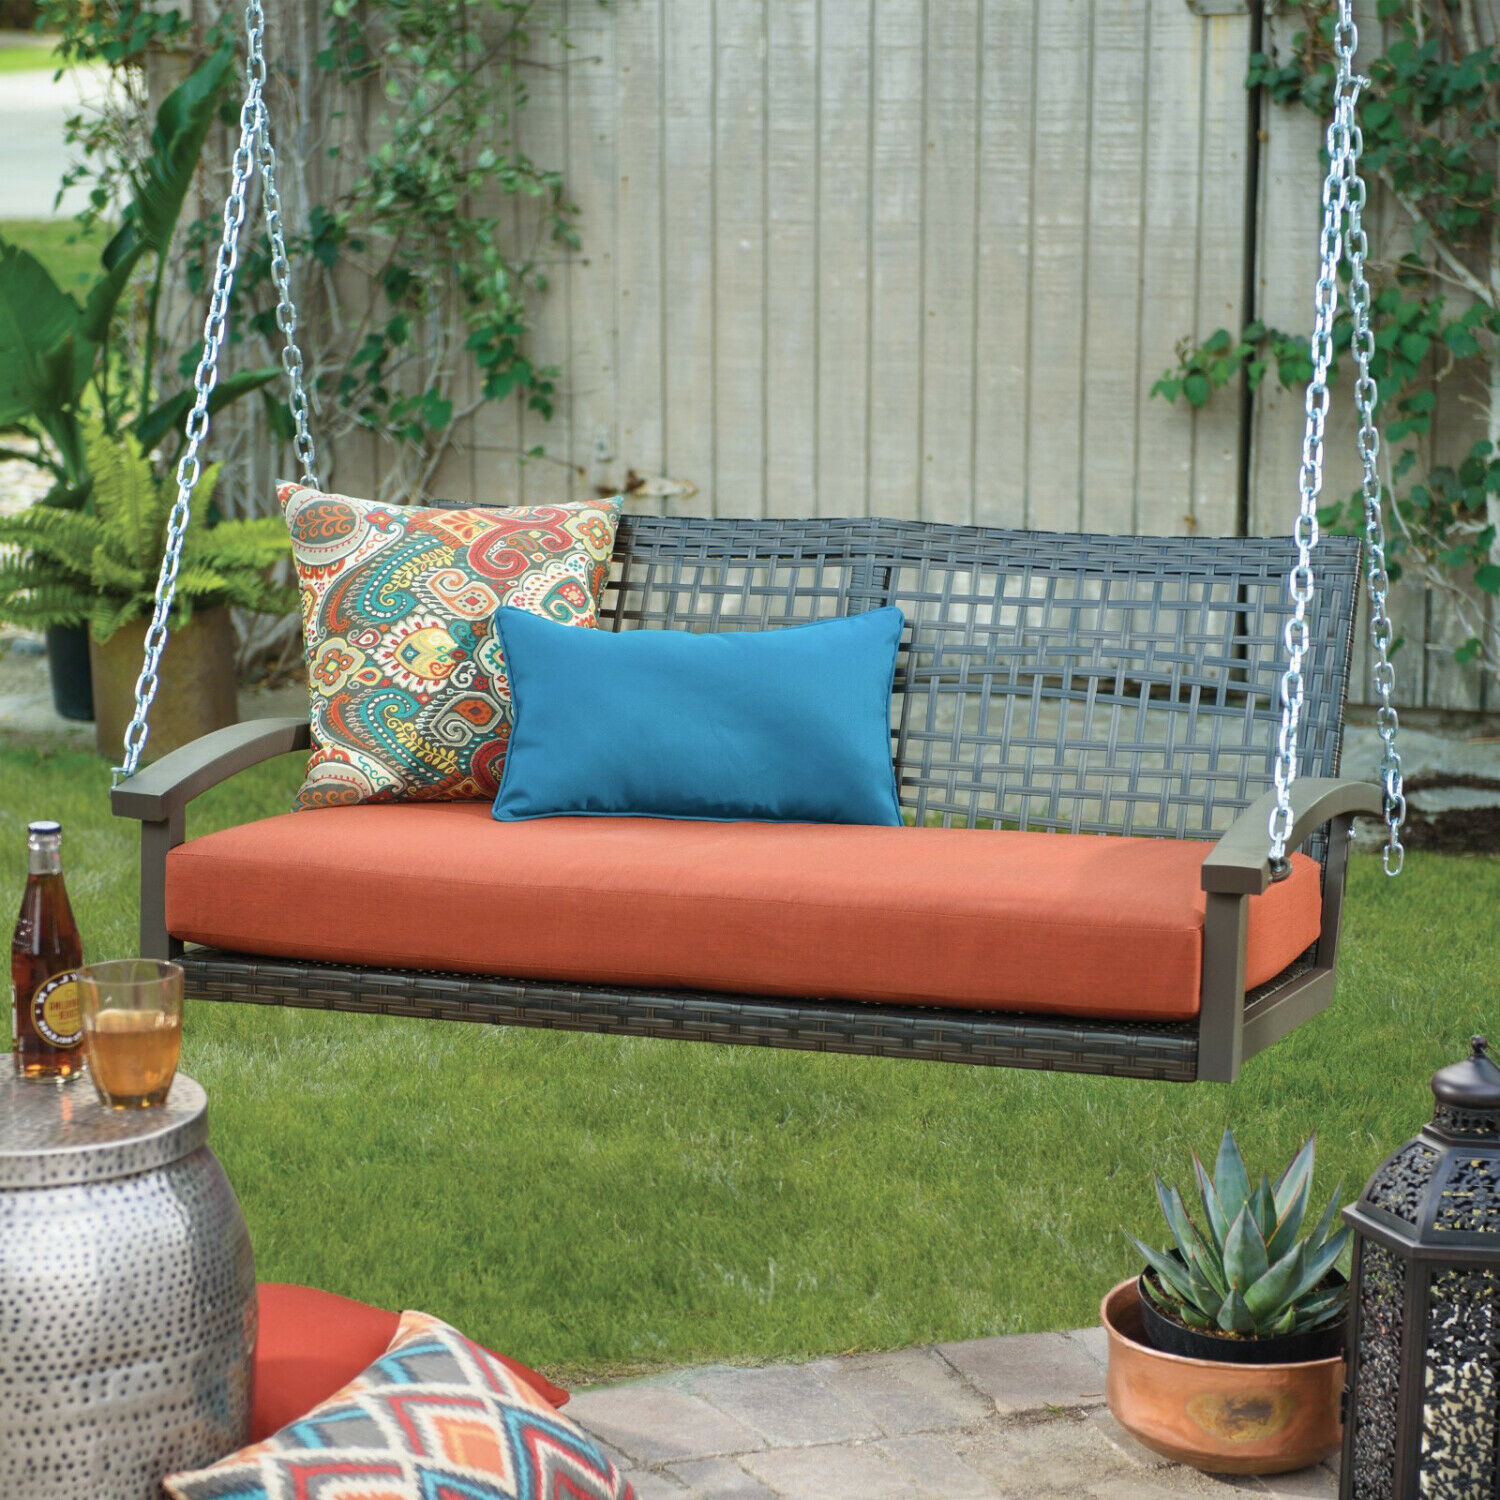 Porch Swing Patio Wicker Hanging Seat Chair Loveseat Outdoor Cushion Home Resin image 6